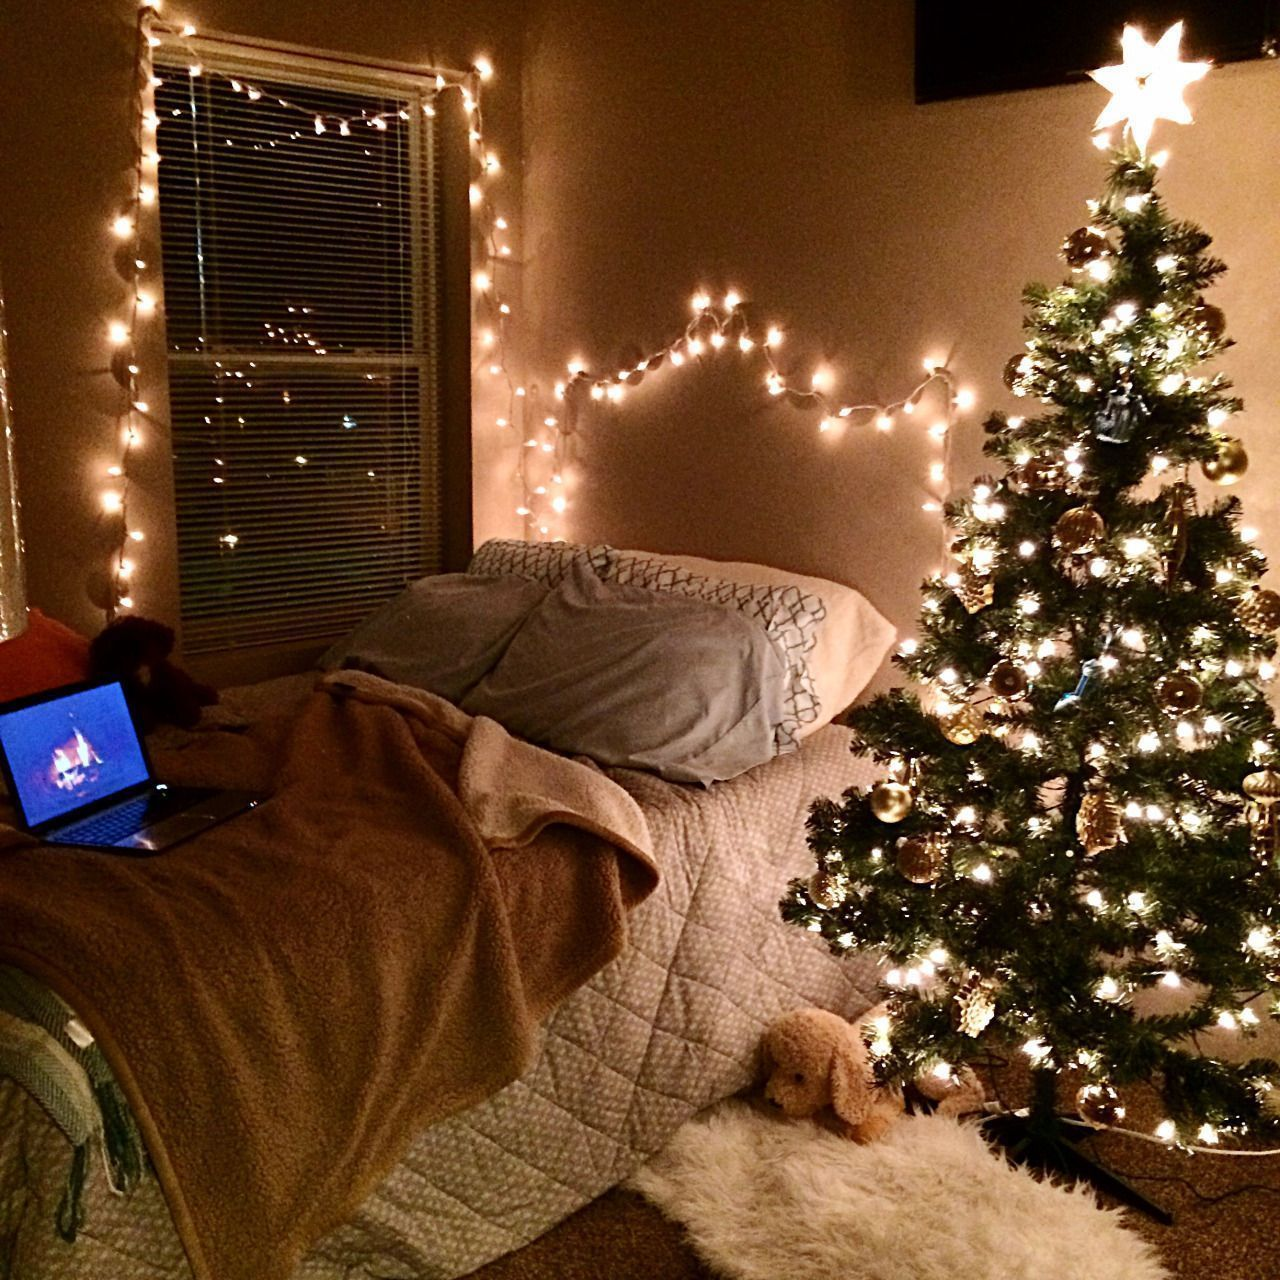 37 Small Apartment with Beauty Christmas Decor - #smallapartmentchristmasdecor Small apartment does not mean you have to save money. Let each room have lighting that suits its purpose. Candles must be small enough to not take up important space in your apartment. String lights are the right choice for standard Christmas decorations. DIY tissue paper trees are time consuming and very thorough, maybe just what you are looking for. #smallapartmentchristmasdecor 37 Small Apartment with Beauty Christ #smallapartmentchristmasdecor